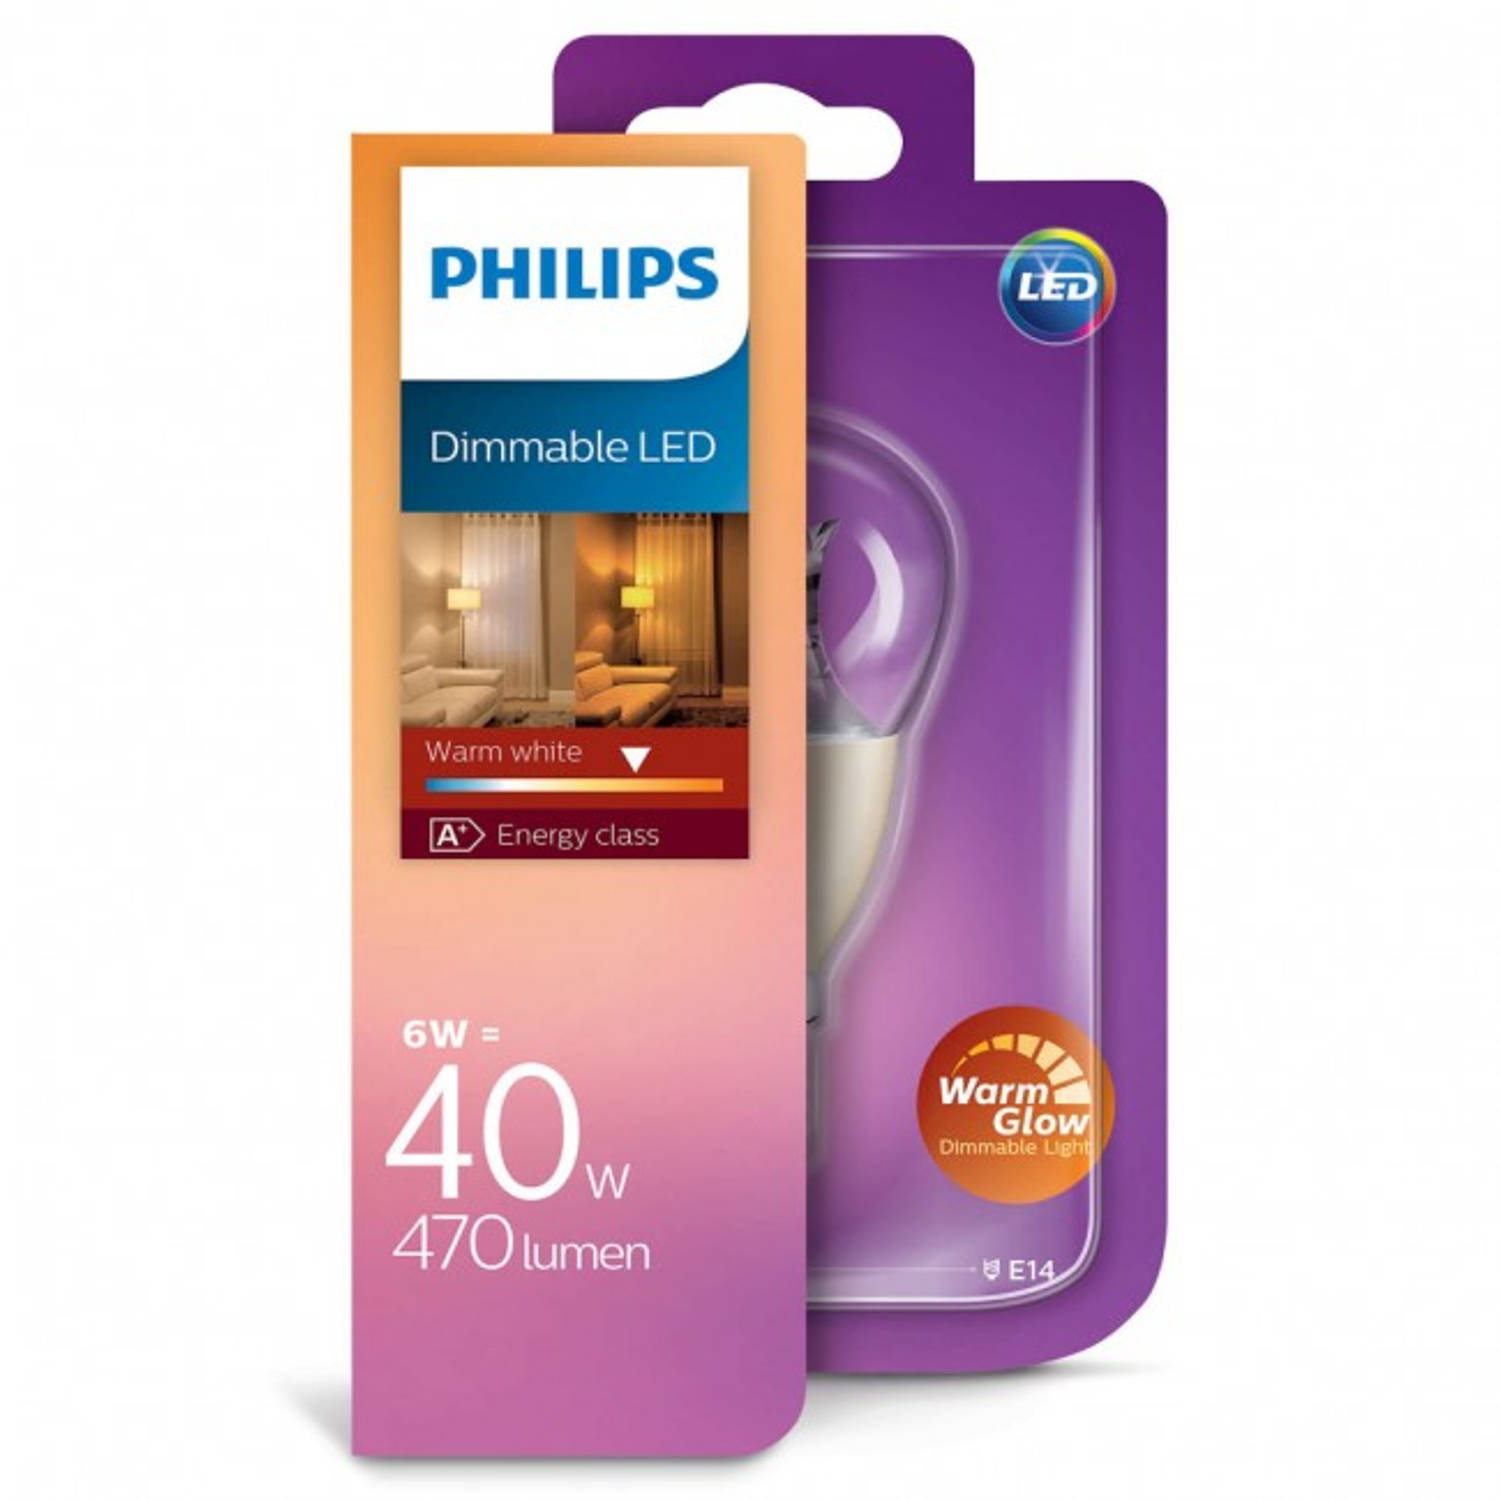 Philips Led kogellamp Warm Glow E14 6W dimbaar